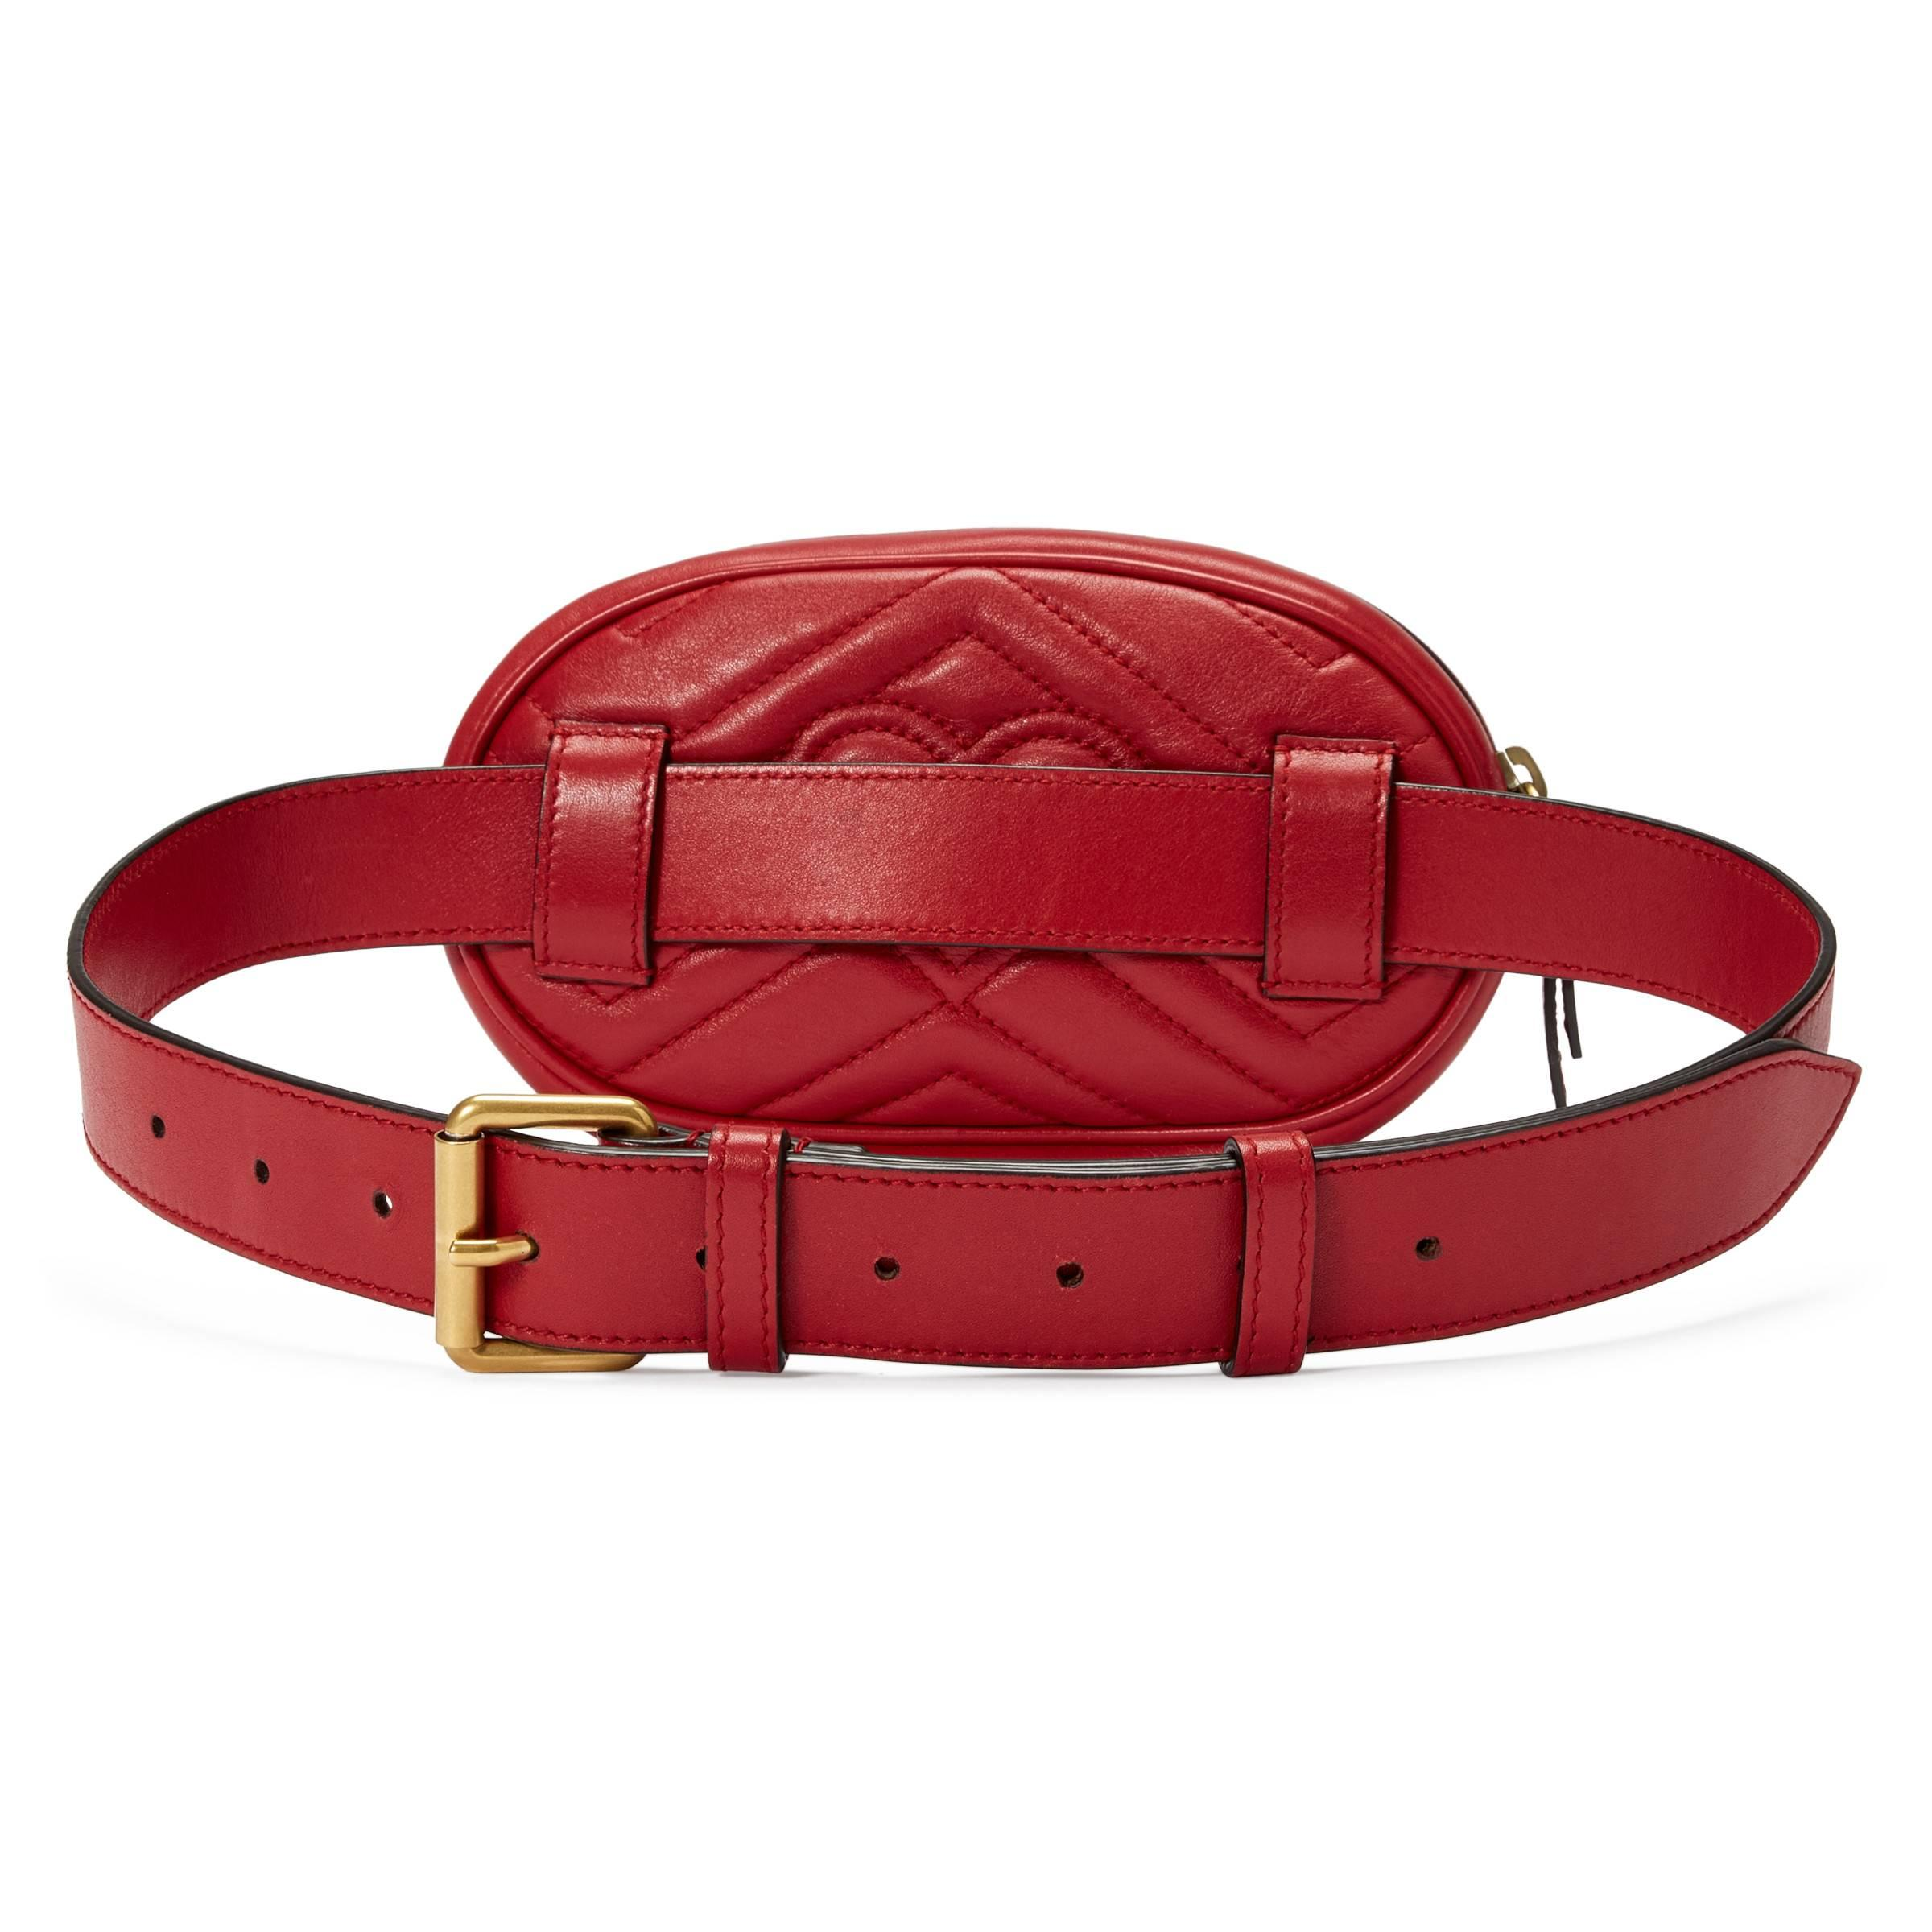 0dae2878a0f4 Gucci Gg Marmont Matelassé Leather Belt Bag in Red - Lyst